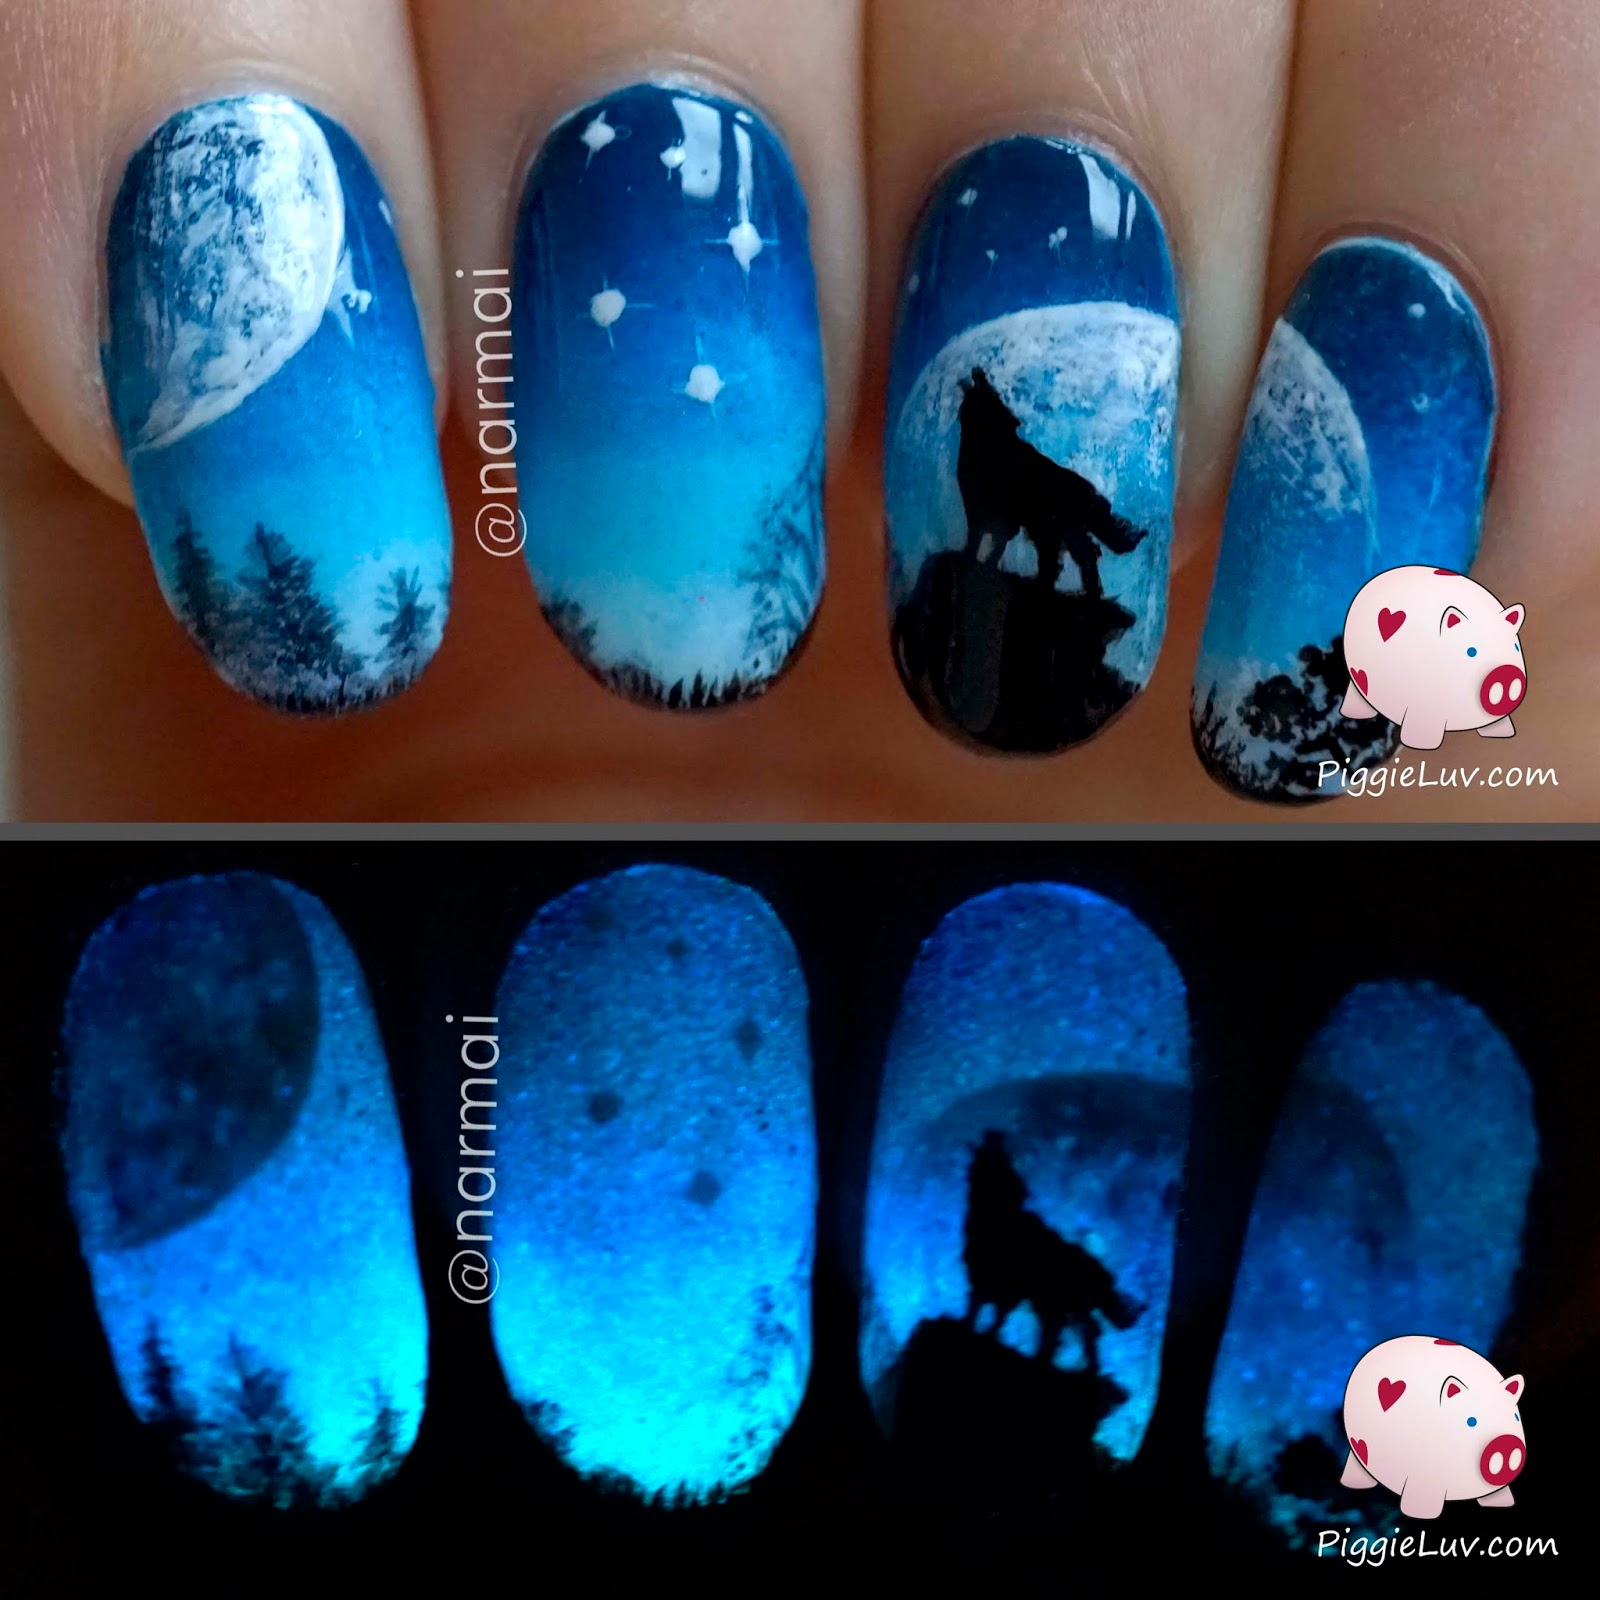 PiggieLuv: Galaxy wolf twin nails (glow in the dark)